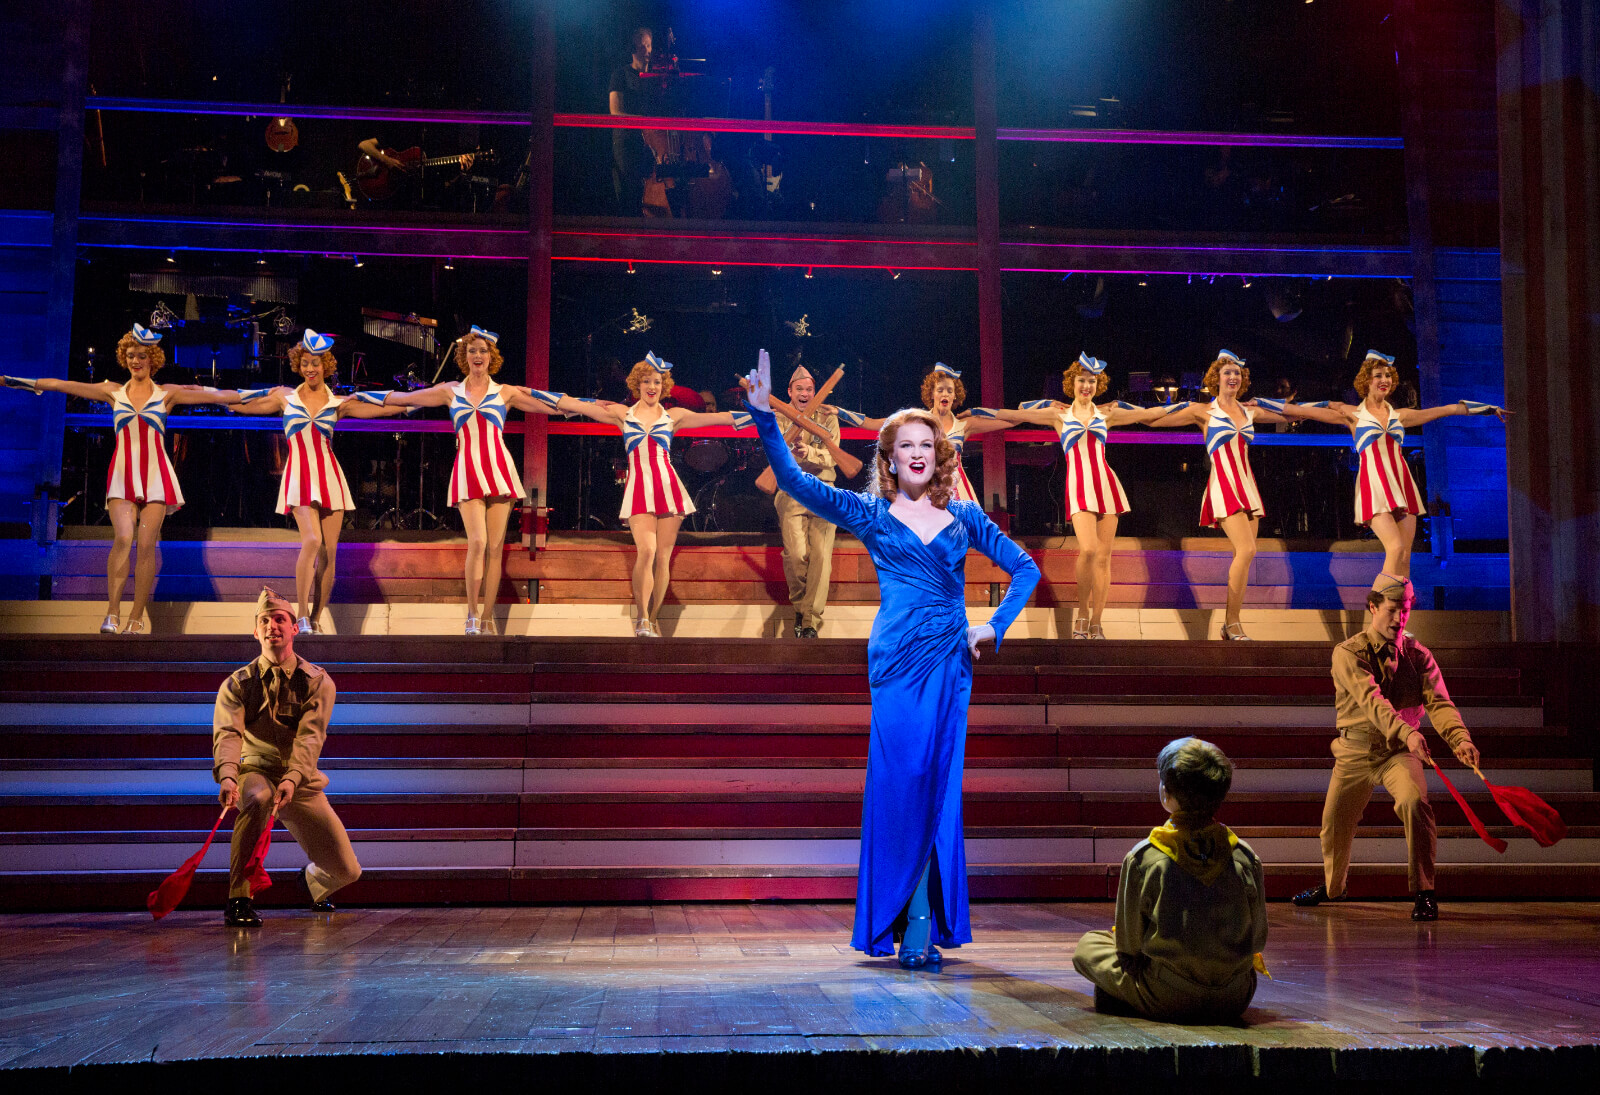 Sandra Bloom (Kate Baldwin) performs in a blue dress as part of the USO as Young Will (Zachary Unger) sits in front of her.